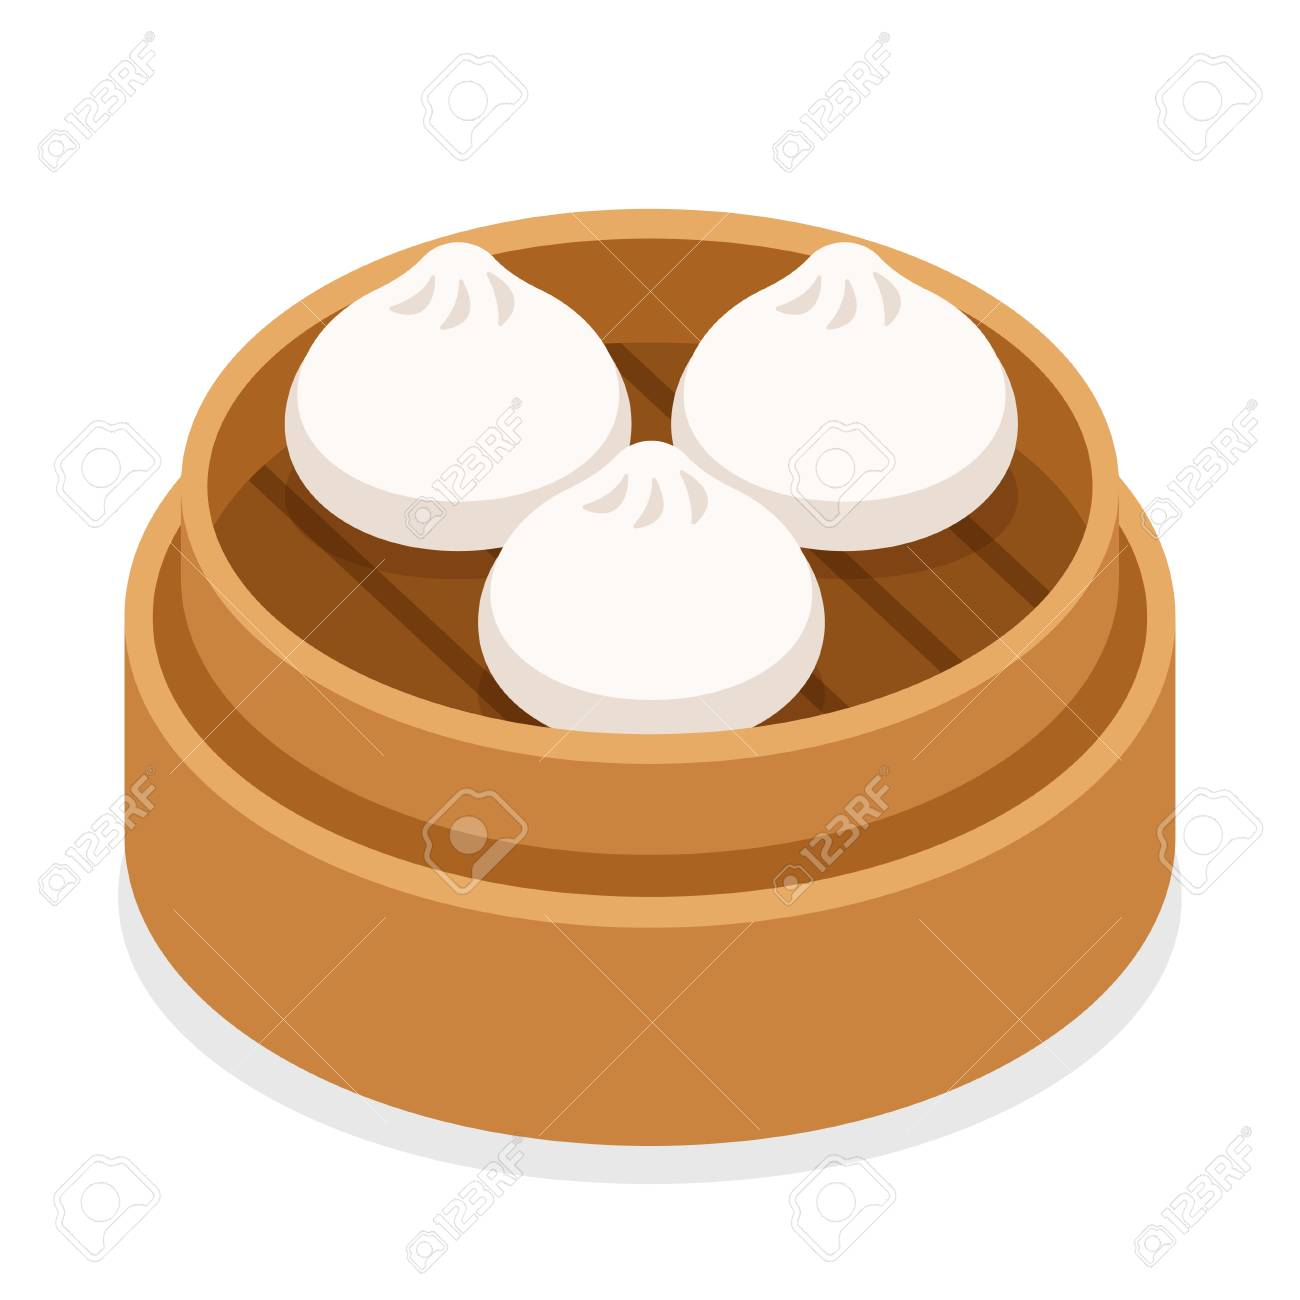 Dim sum, traditional Chinese dumplings, in bamboo steamer basket. Asian food vector illustration. - 95218808